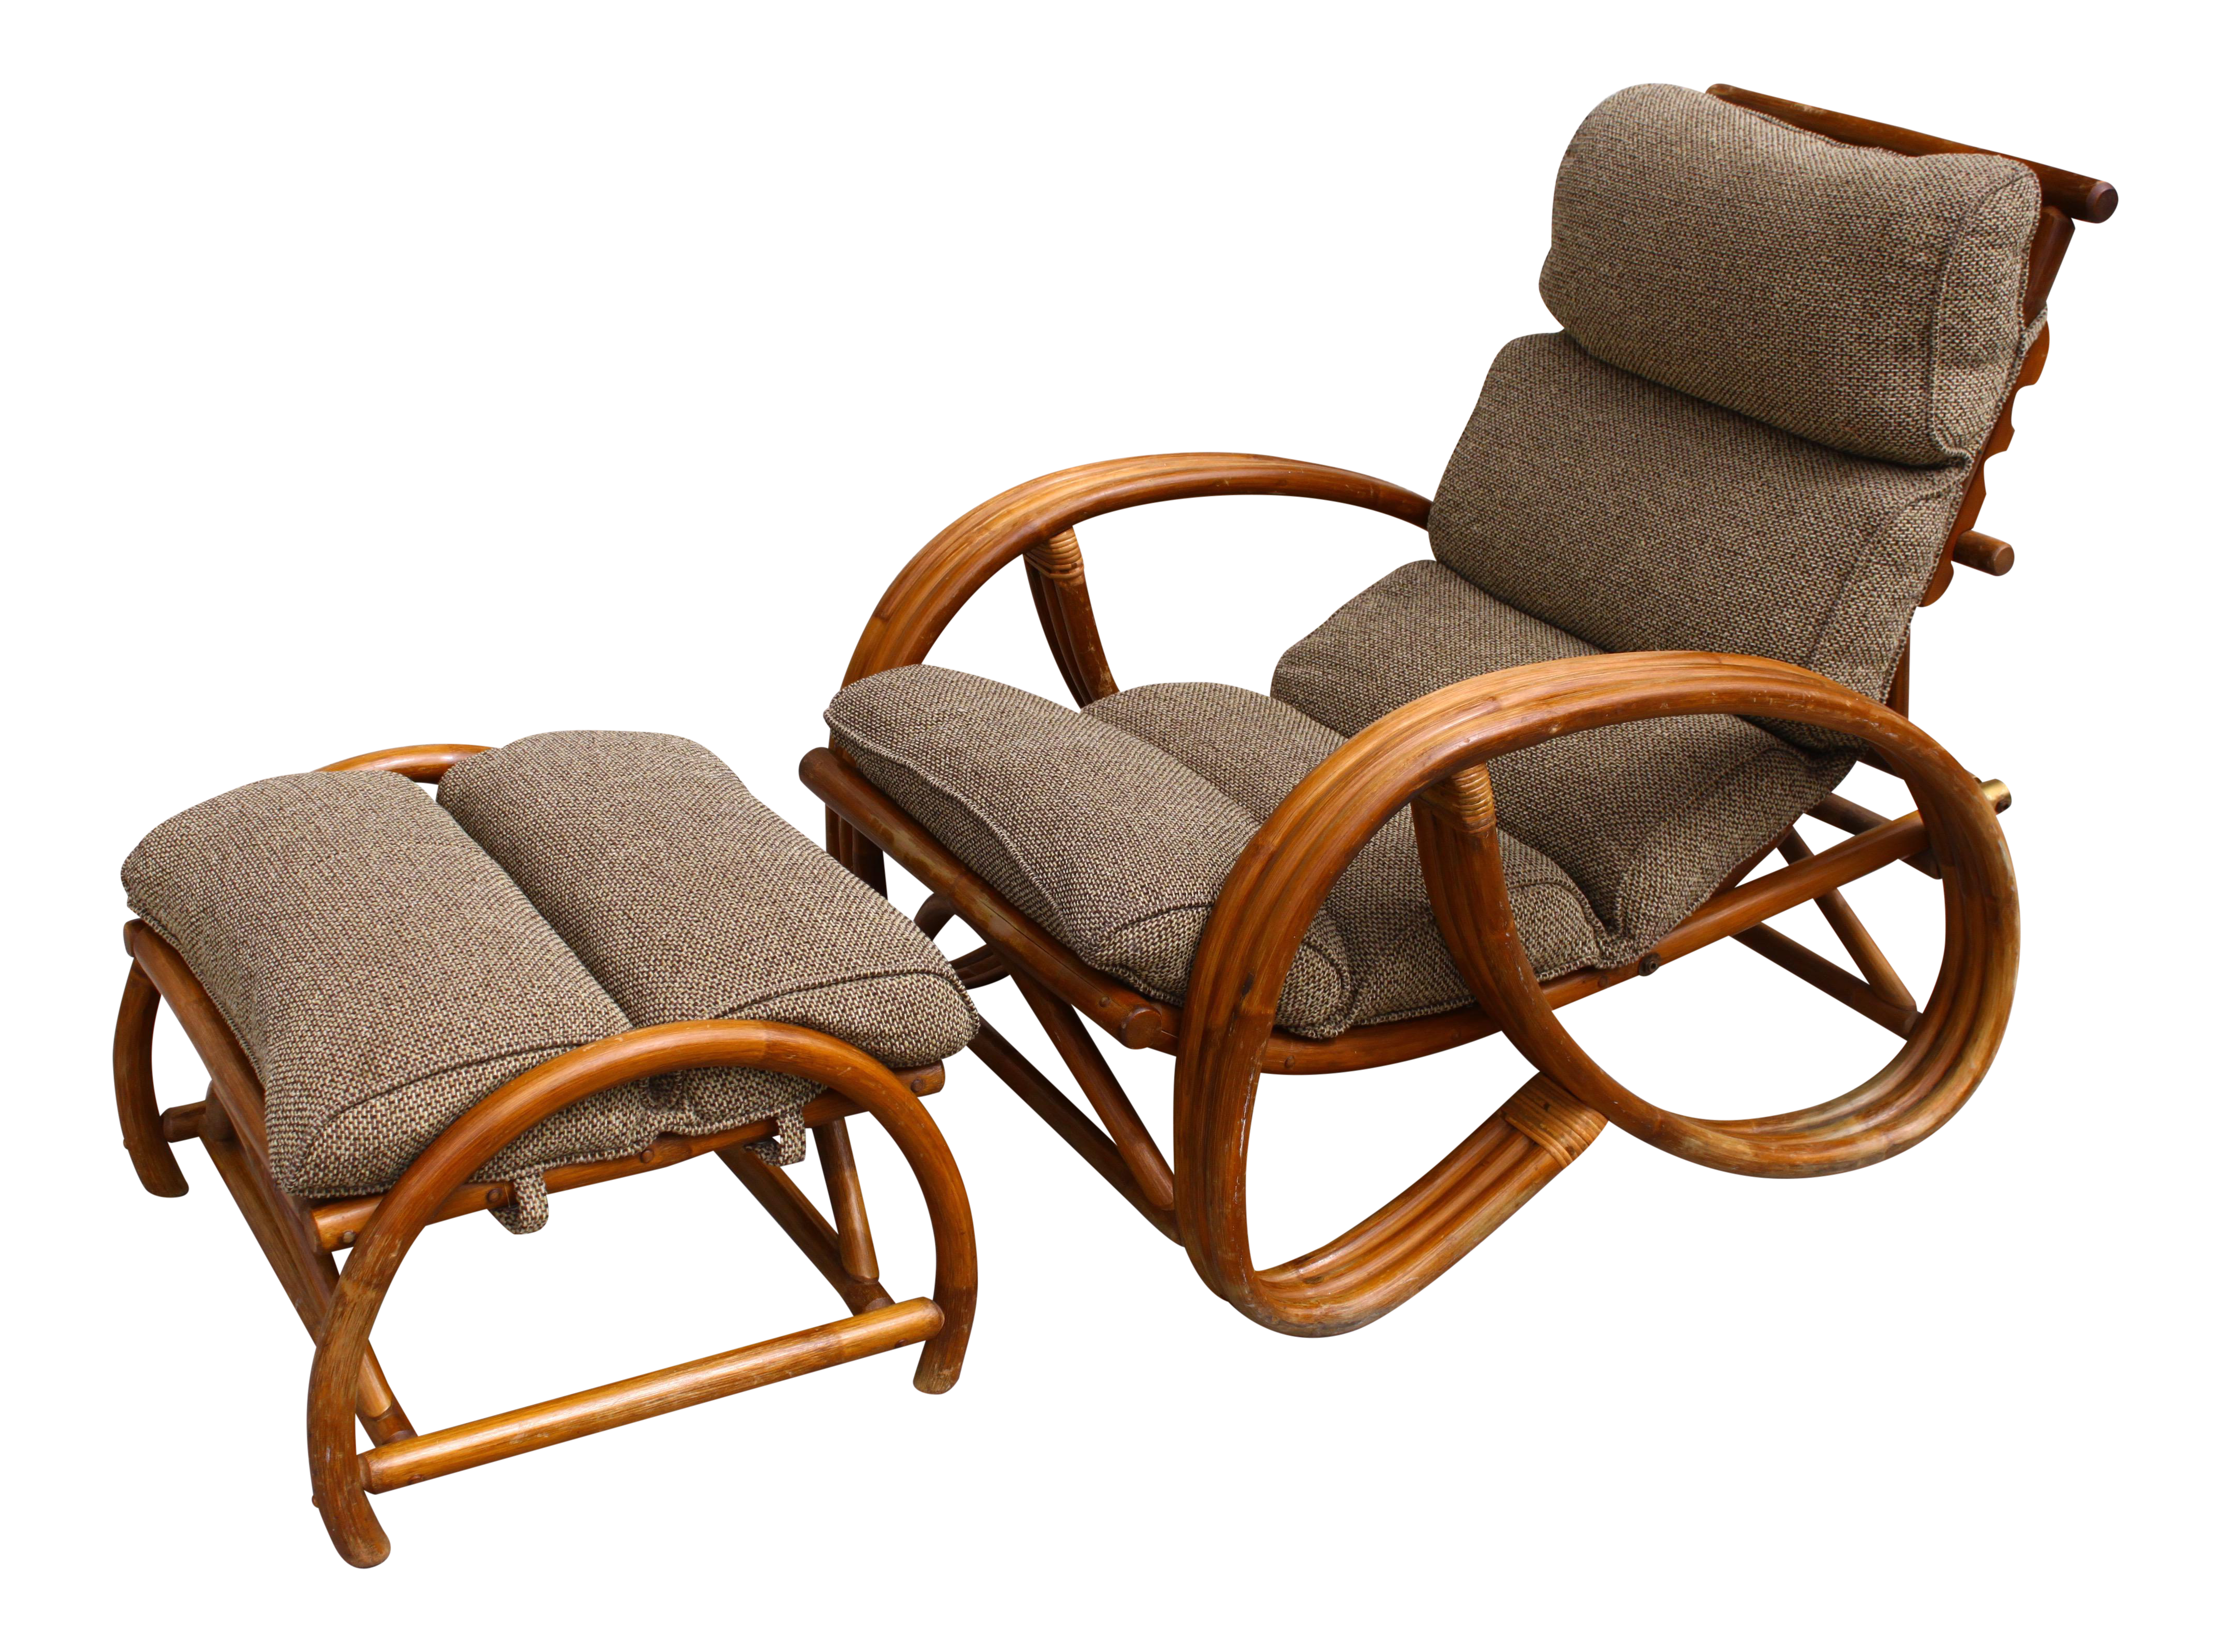 Reclining Chair & Ottoman in the Manner of Paul Frankl